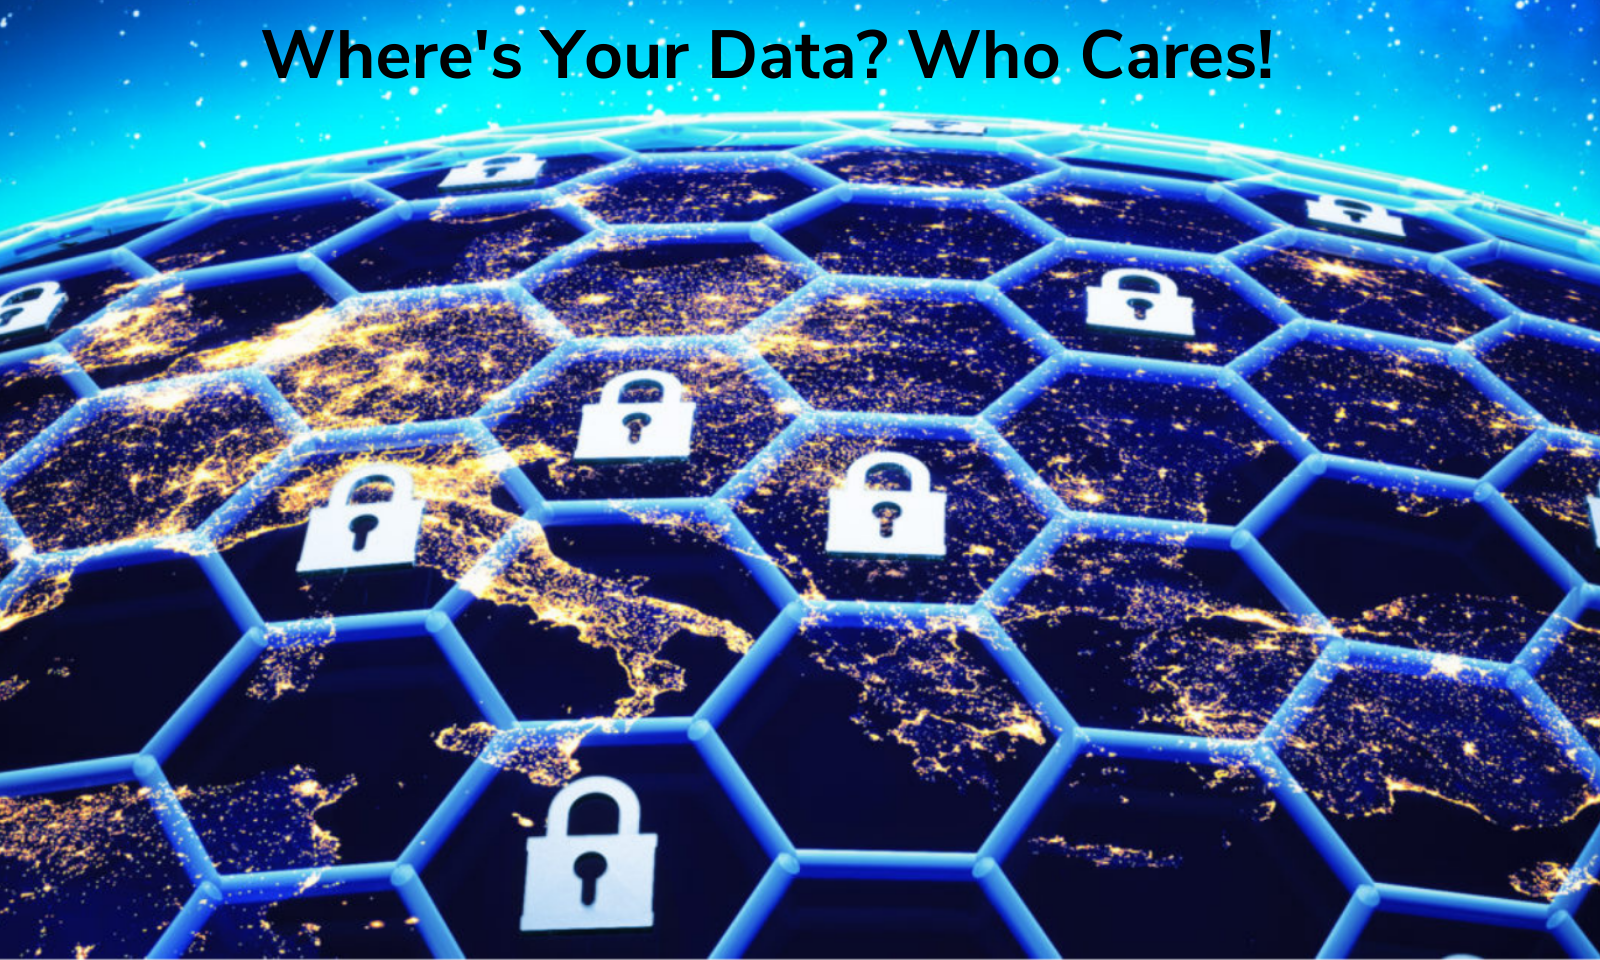 Where's Your Data? Who Cares!